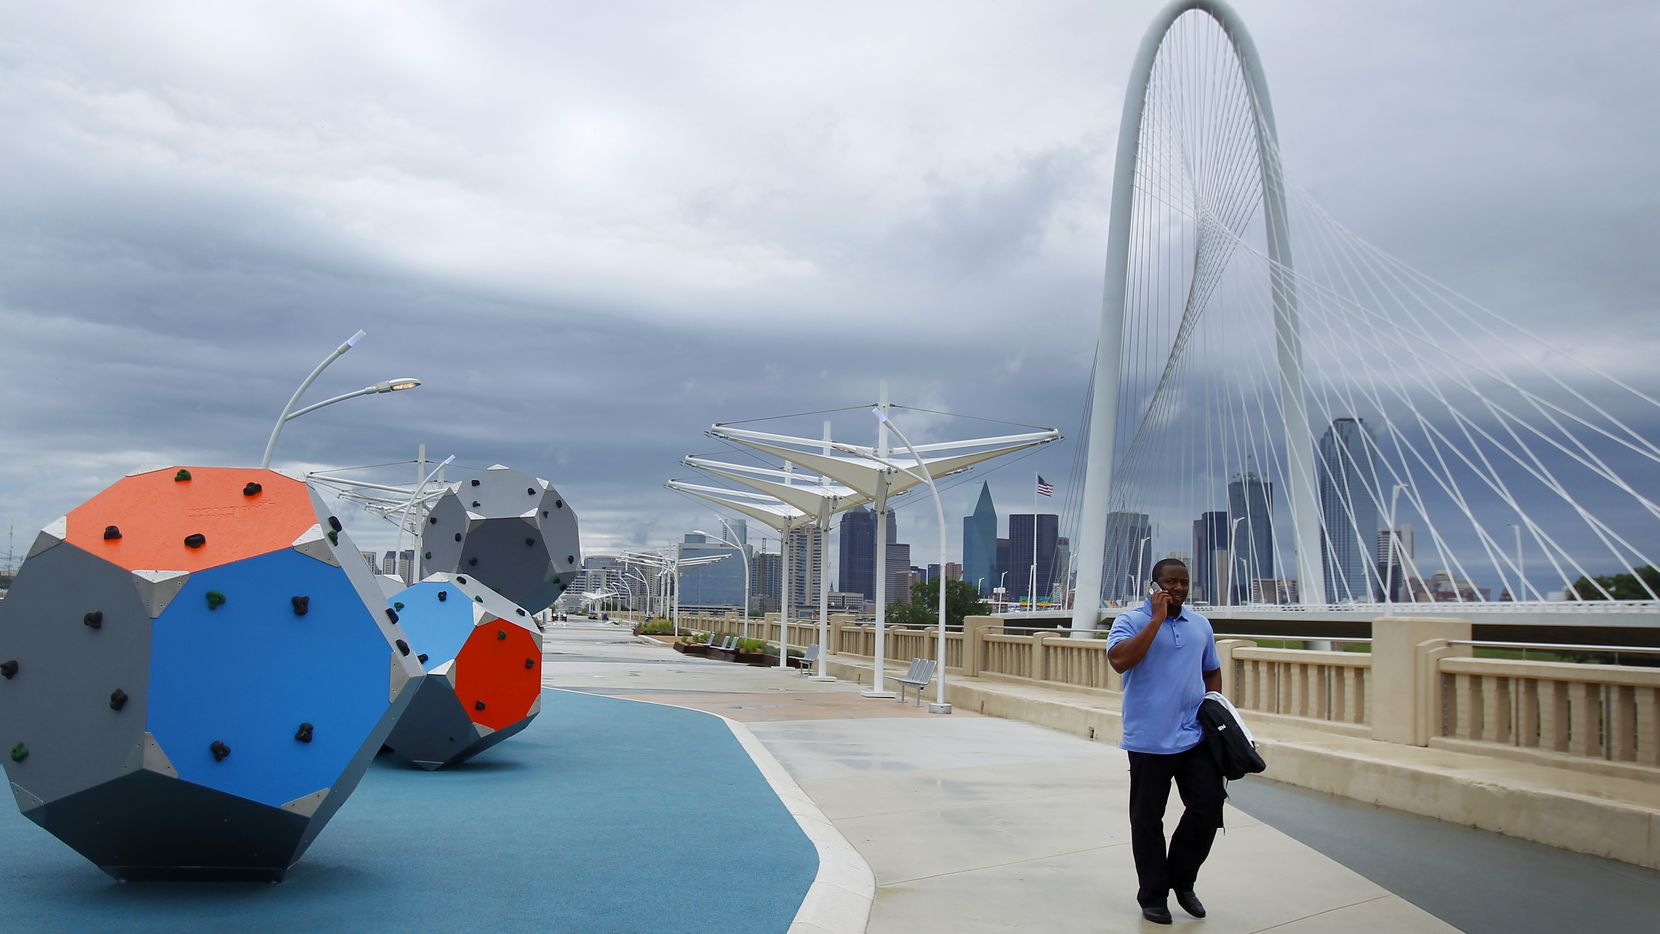 The Continental Avenue Bridge project manager, Vincent Lewis, a senior engineer with the City of Dallas, walked the new pedestrian area Thursday morning despite the rain.  The bridge that connects to West Dallas and Trinity Grove is one of the most recent improvements to the Trinity River Corridor in Dallas.